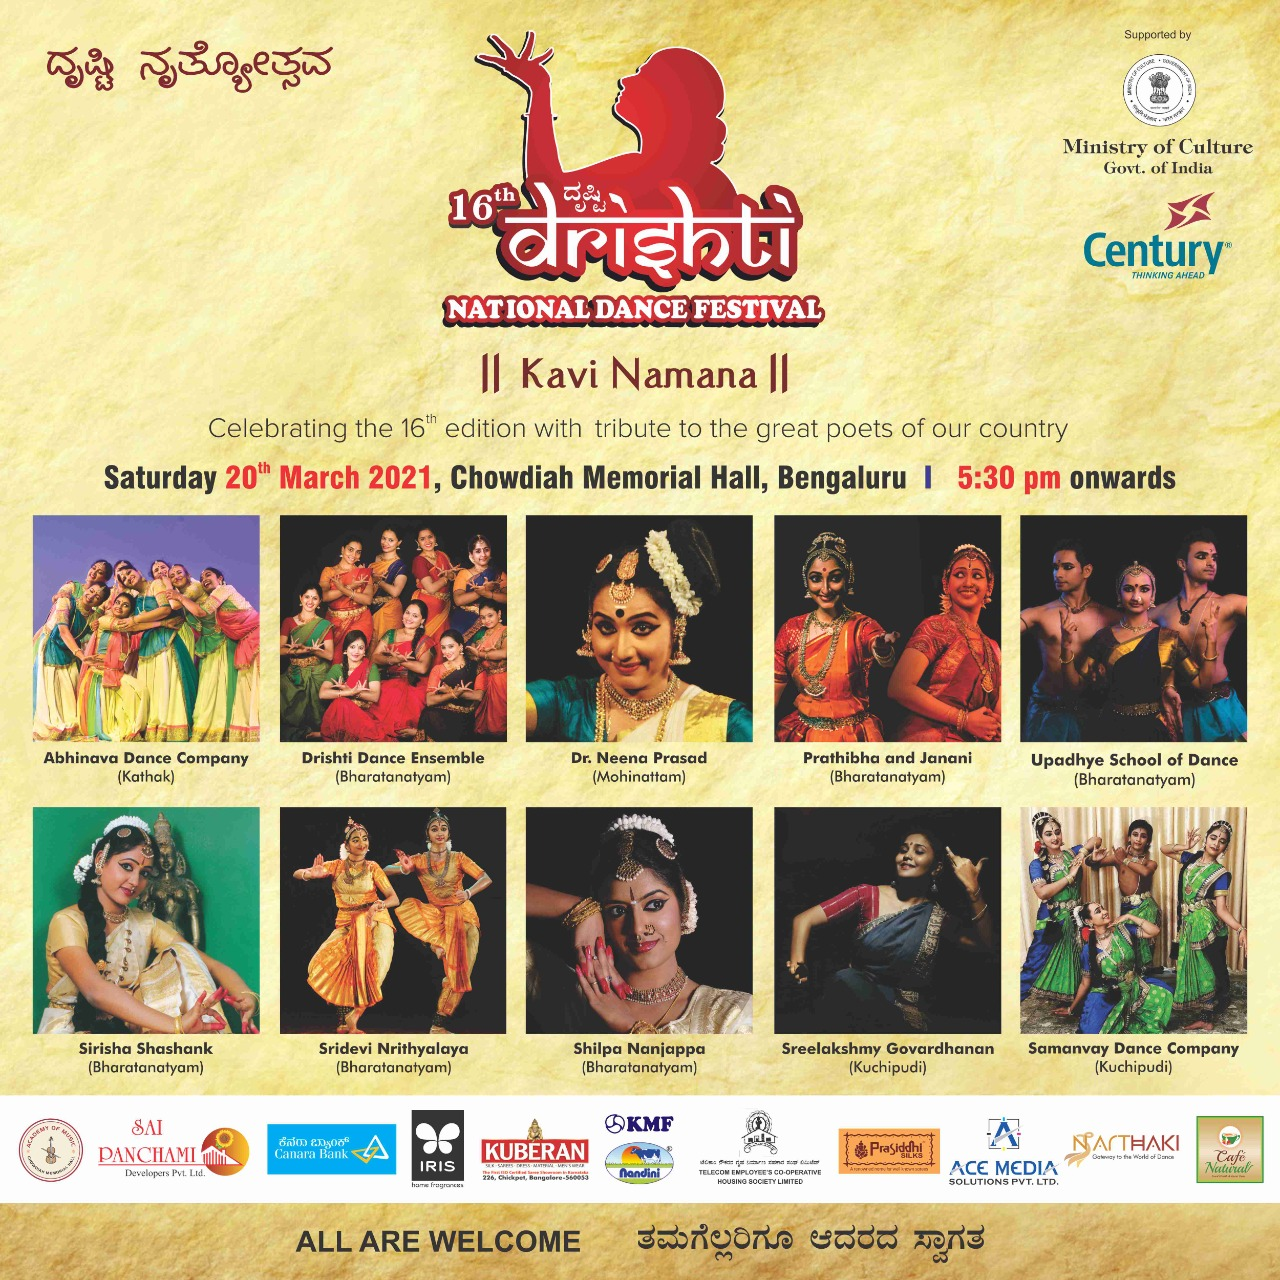 Programme of 16th Drishti National Dance Festival, theme - Kavi Namana, a tribute to the great poets of India by some of the top dancers and dance companies, at Chowdiah Memorial Hall, Bengaluru on 20 Mar 2021, 530 pm onwards